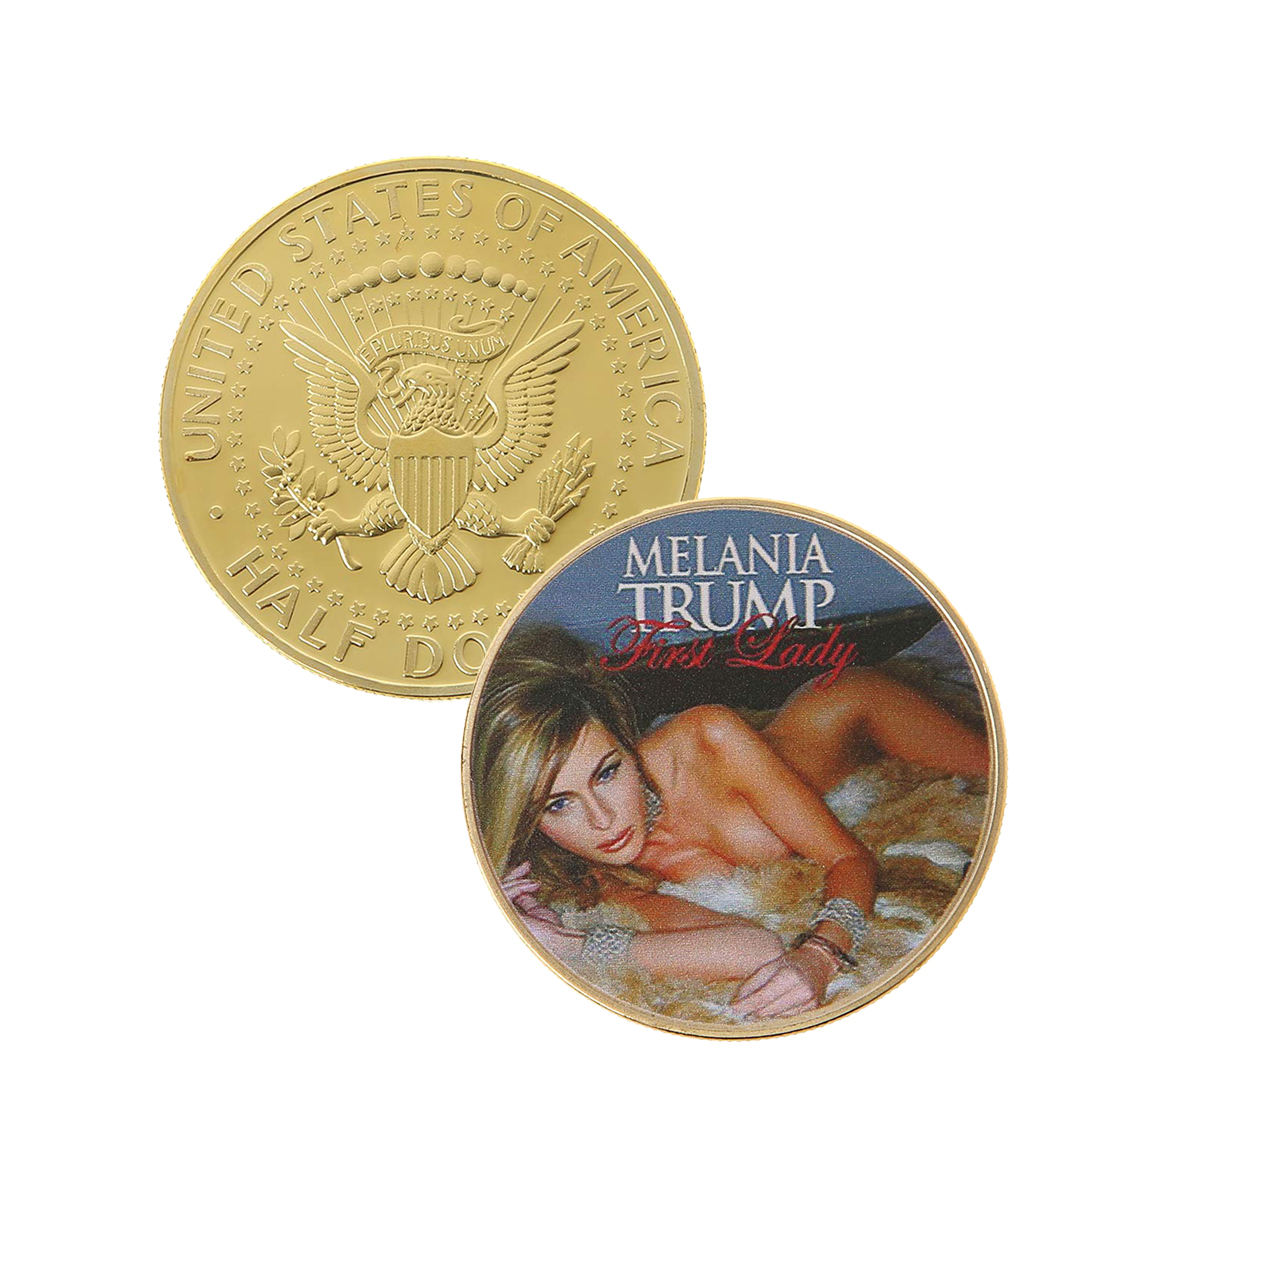 United States First Lady Melania Trump Challenge Coin Sexy Model Commemorative Coin Gold Silver